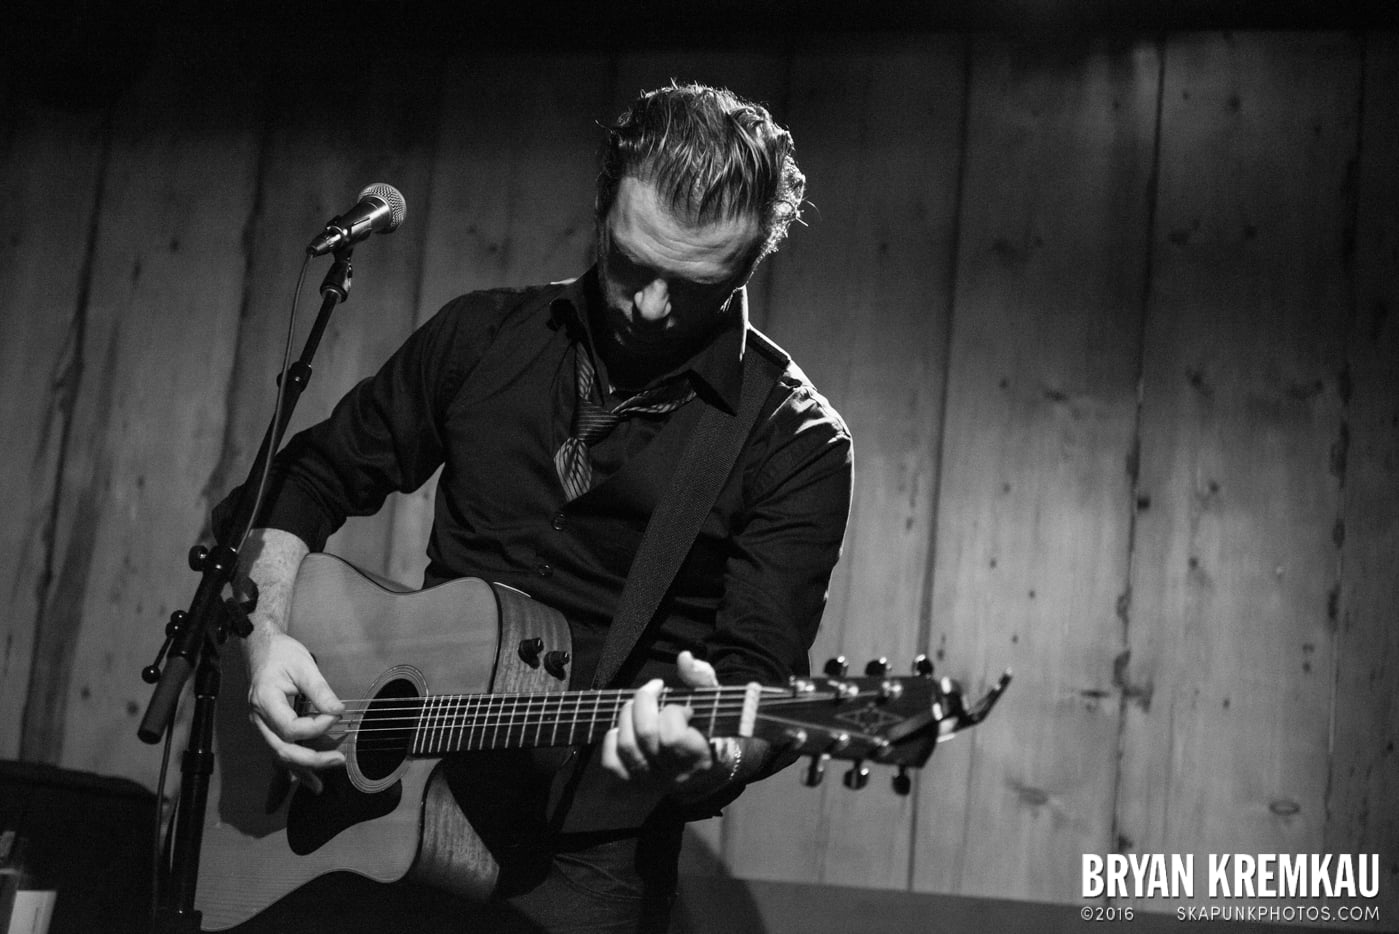 Chris Trapper @ Rockwood Music Hall, NYC - 12.7.13 (6)